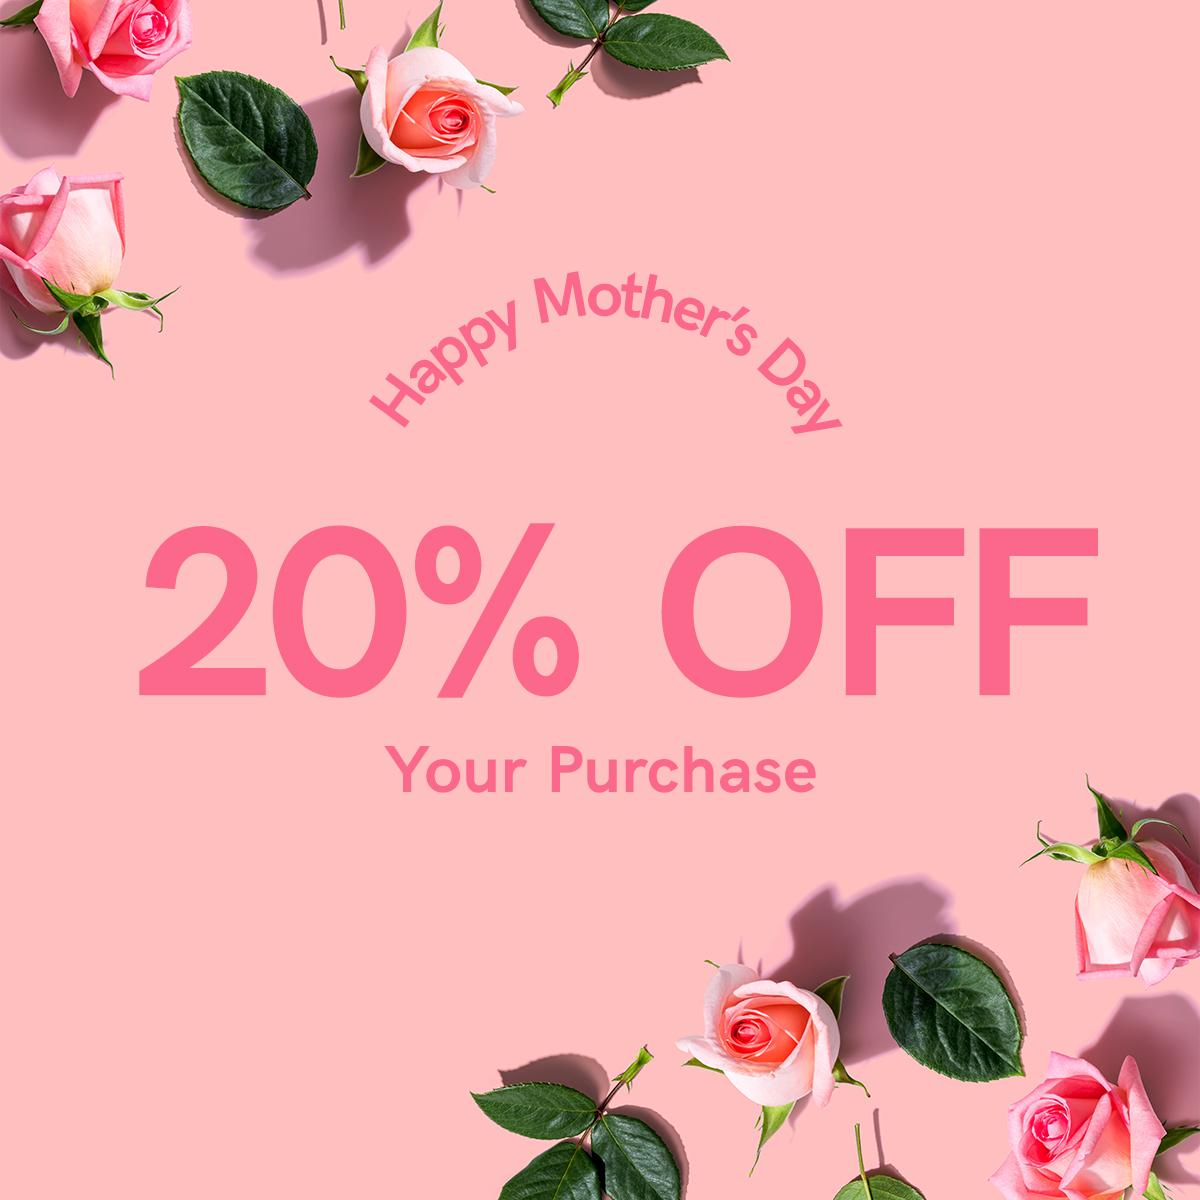 Happy Mother's Day! Celebrate moms everywhere with 20% off your purchase through midnight tonight ❤   Shop Now: https://t.co/stsIsQkZWE https://t.co/qHYEVkUwZT